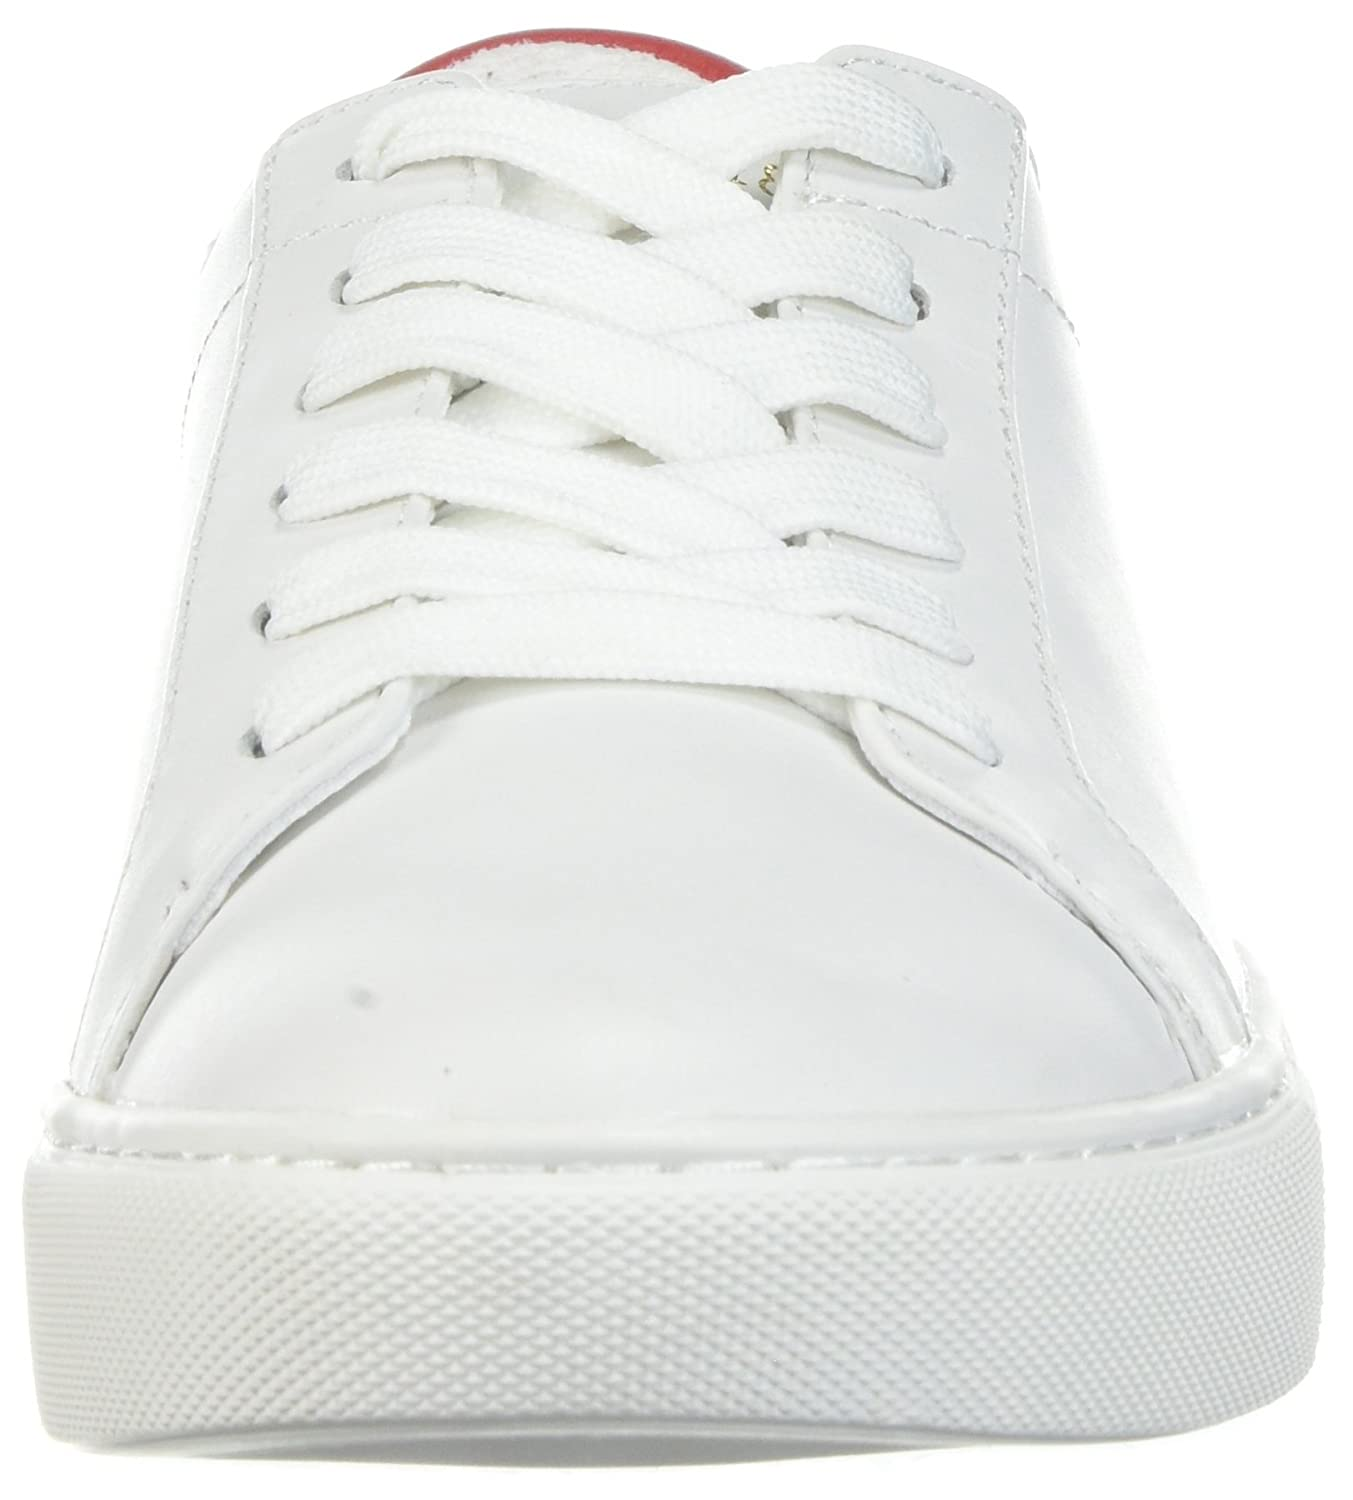 Kenneth Cole New York Women's Kam Lace up Chinese New Year-Techni-Cole 37.5 Lining Sneaker B075KX4VP8 8.5 B(M) US|White